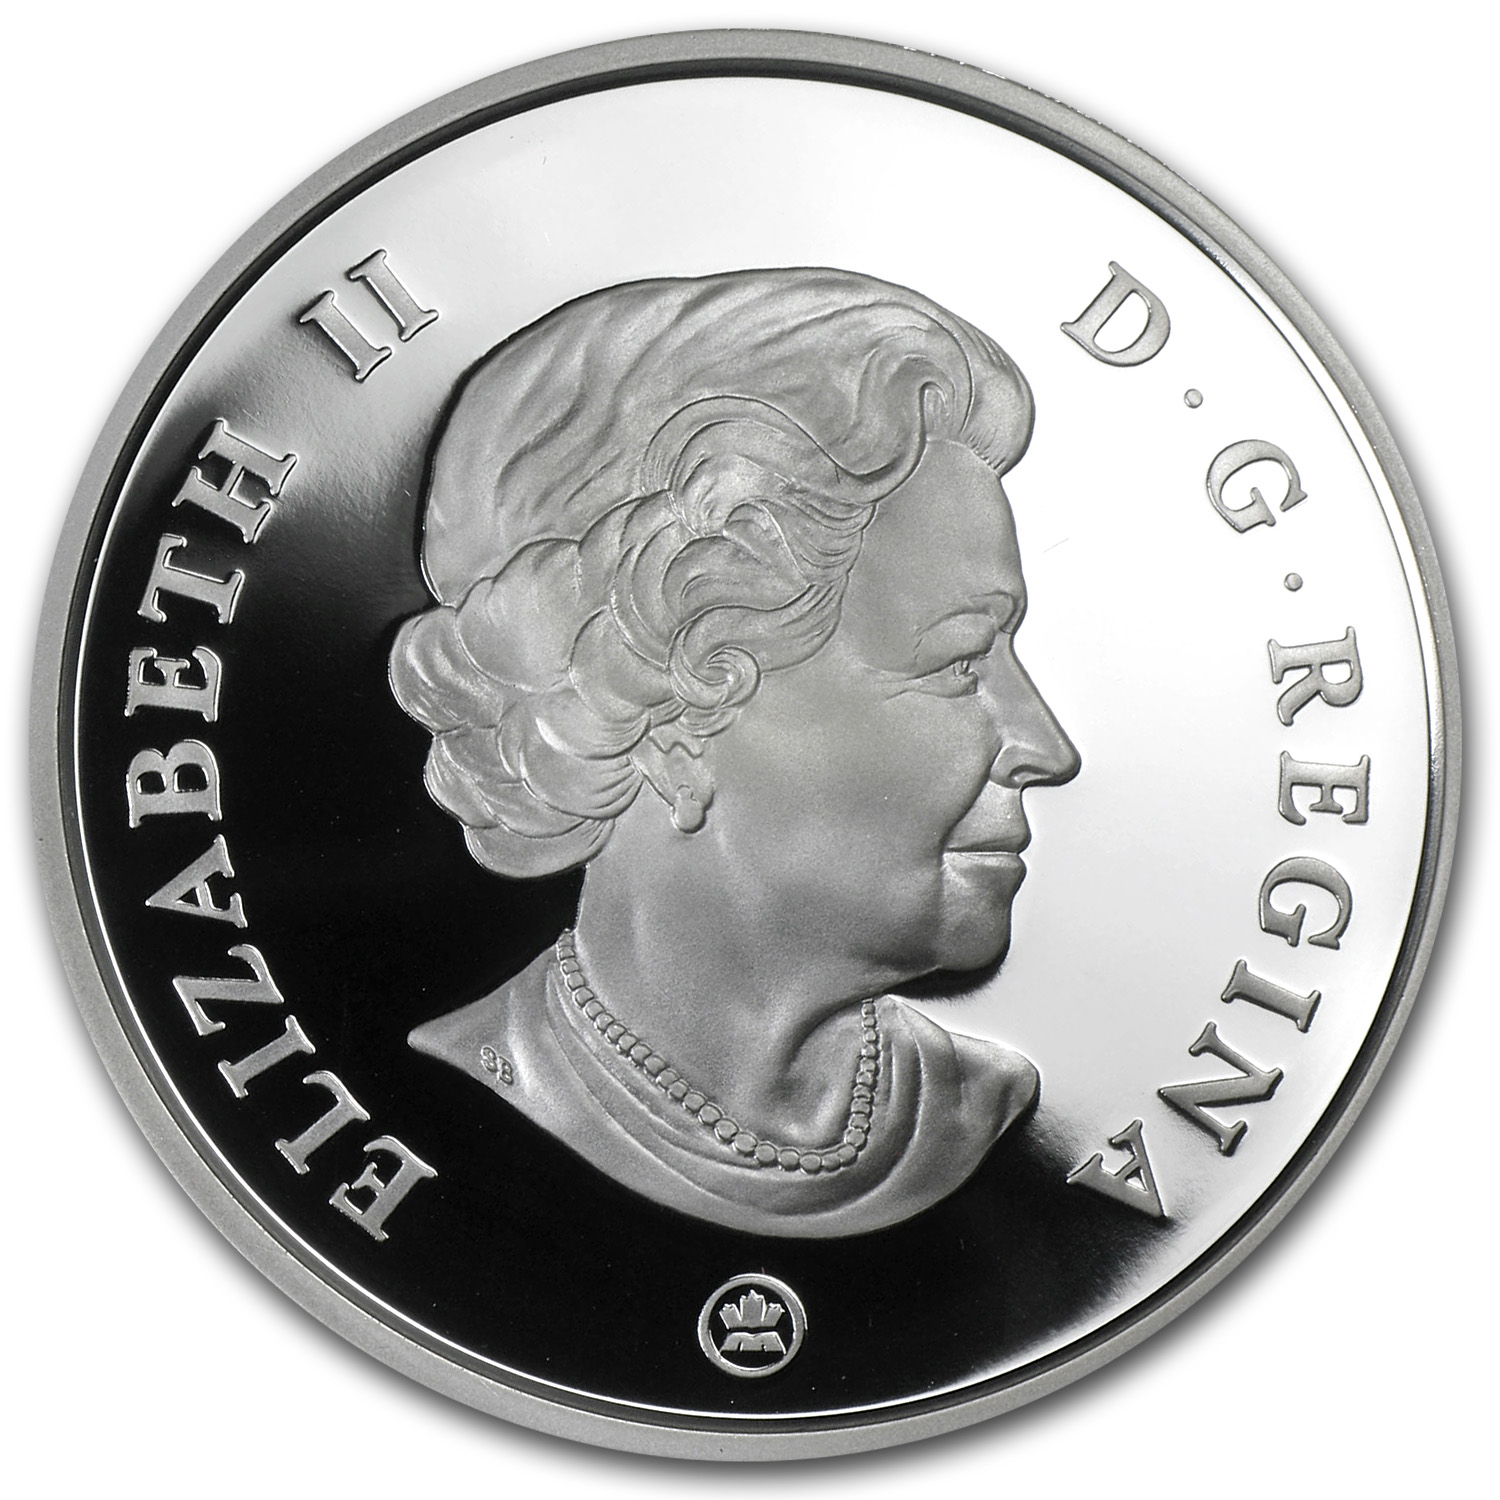 2009 1 oz Canadian Vignettes of Royalty Ultra High Relief